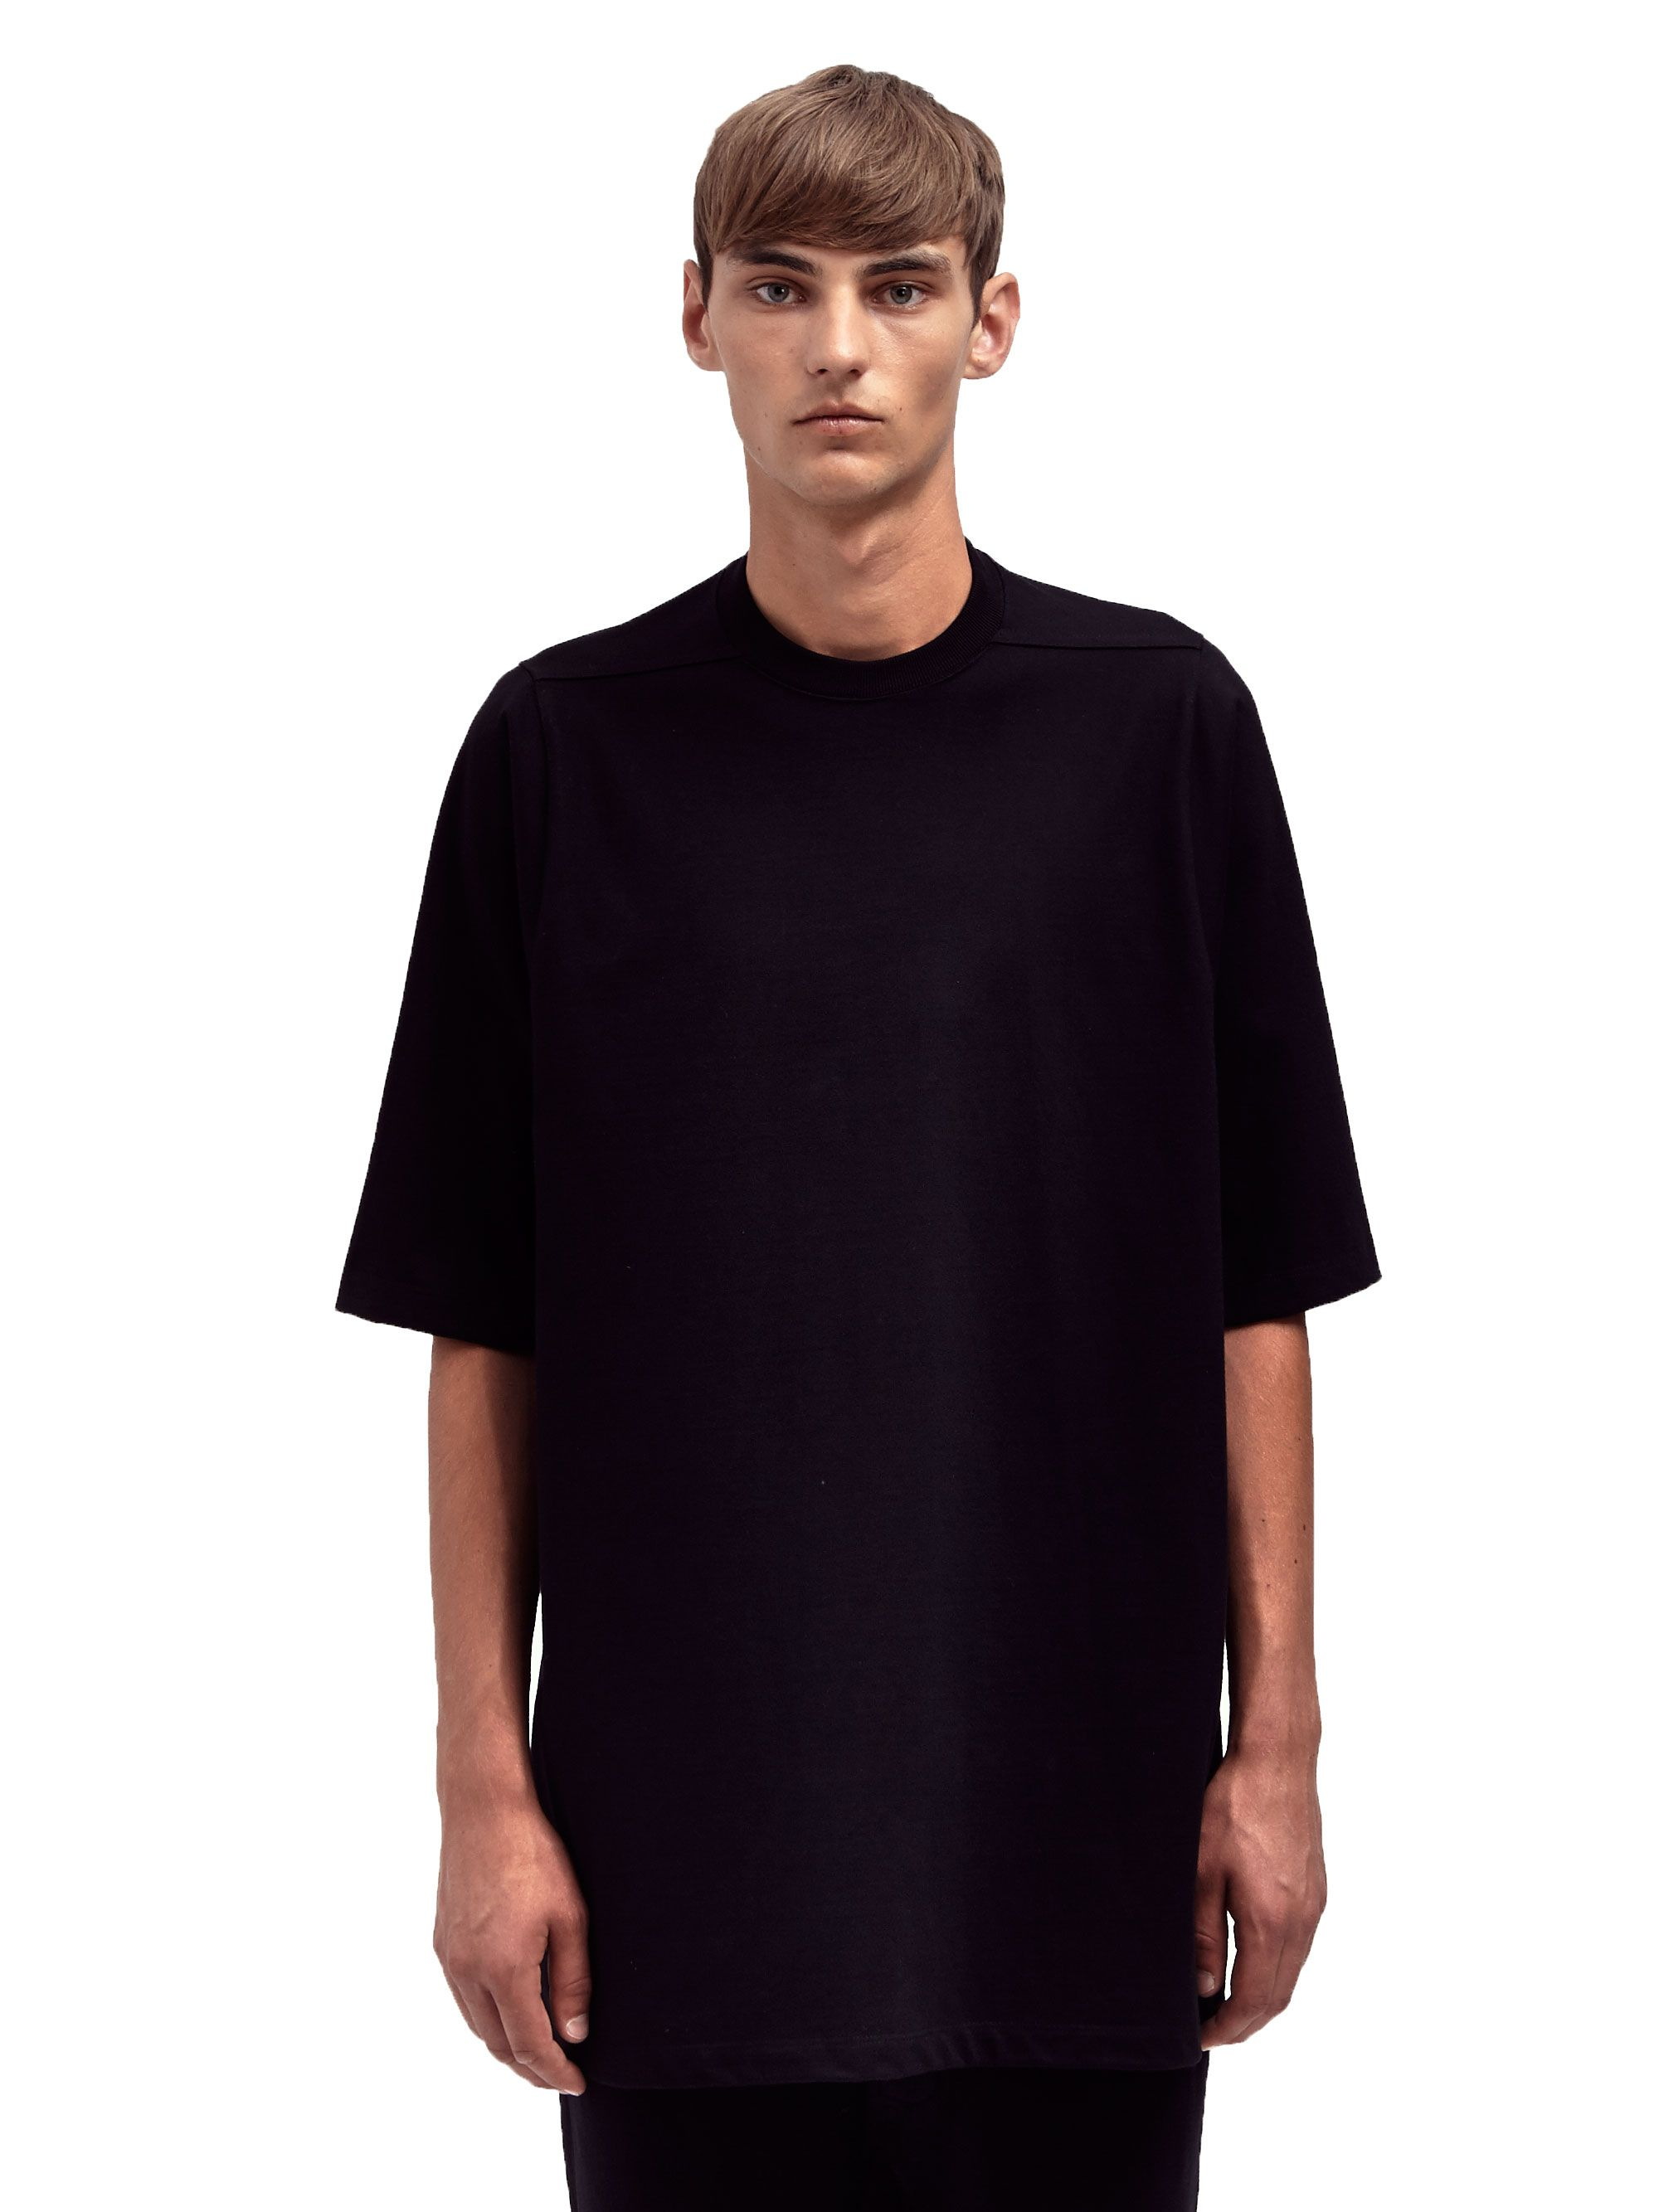 Rick Owens Mens Oversized Crew Neck Tshirt In Black For